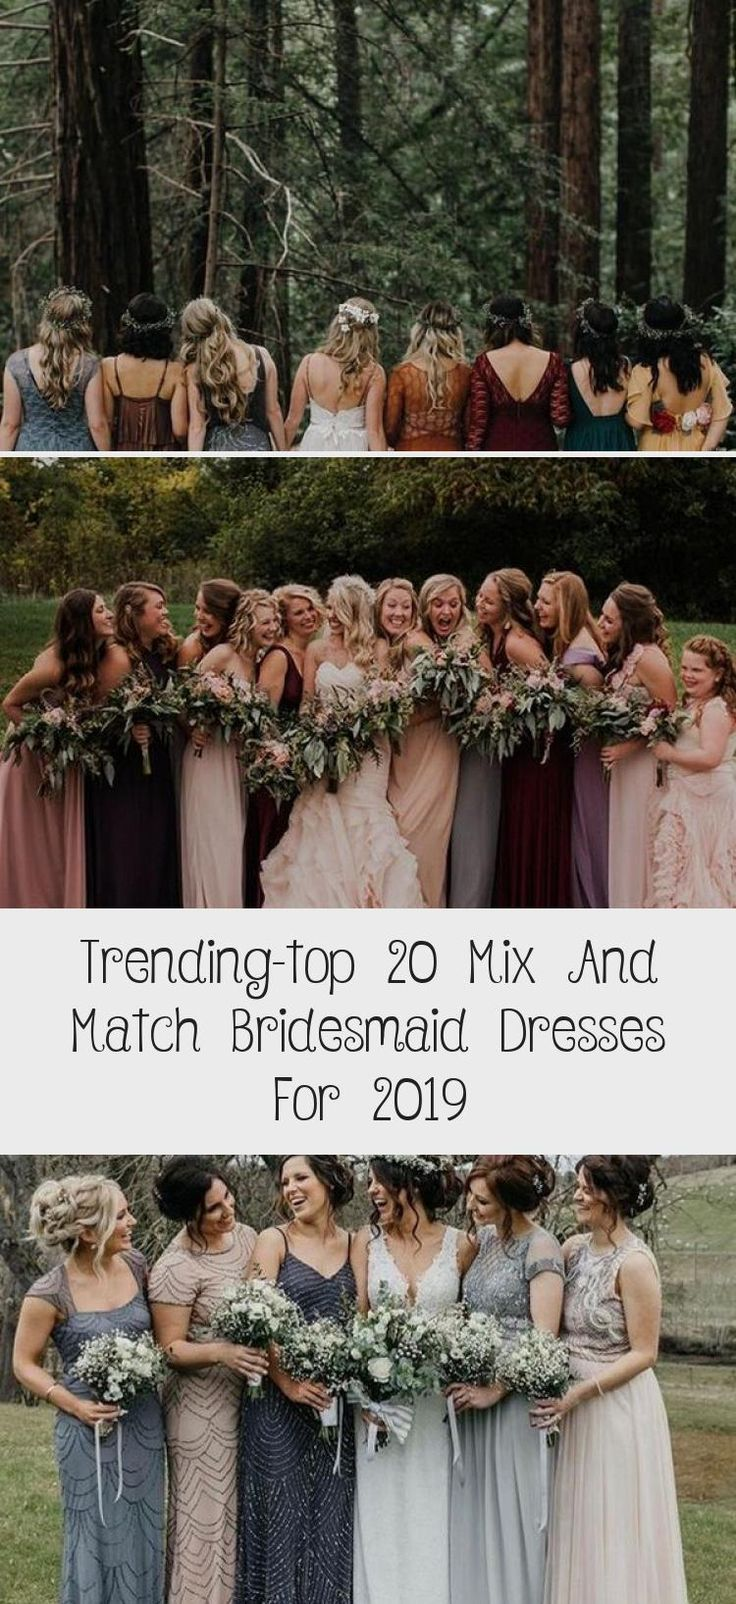 trending mix and match bridesmaid dresses for fall weddings #PeachBridesmaidDresses #BridesmaidDressesTwoPiece #AfricanBridesmaidDresses #GrayBridesmaidDresses #GreyBridesmaidDresses